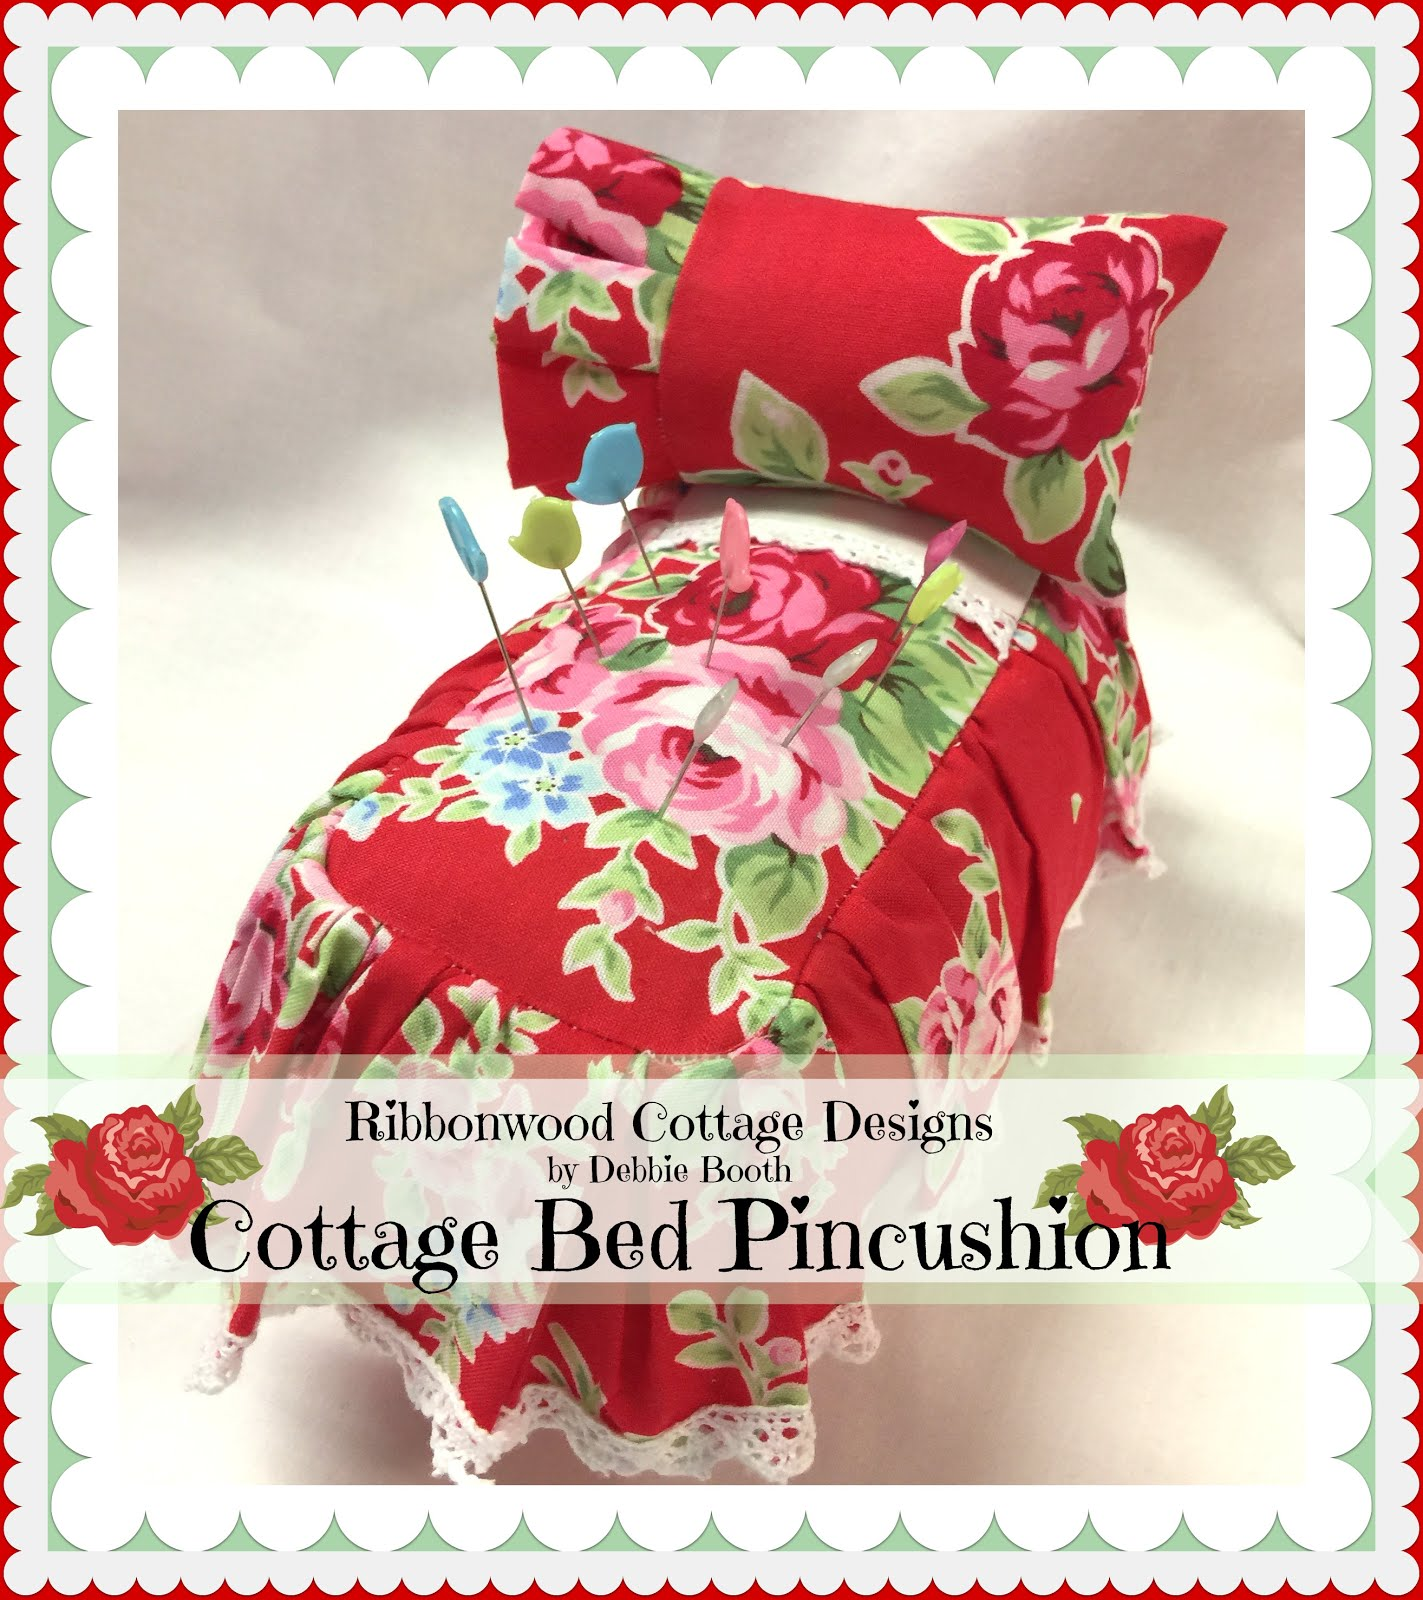 Cottage Bed Pincushion PDF